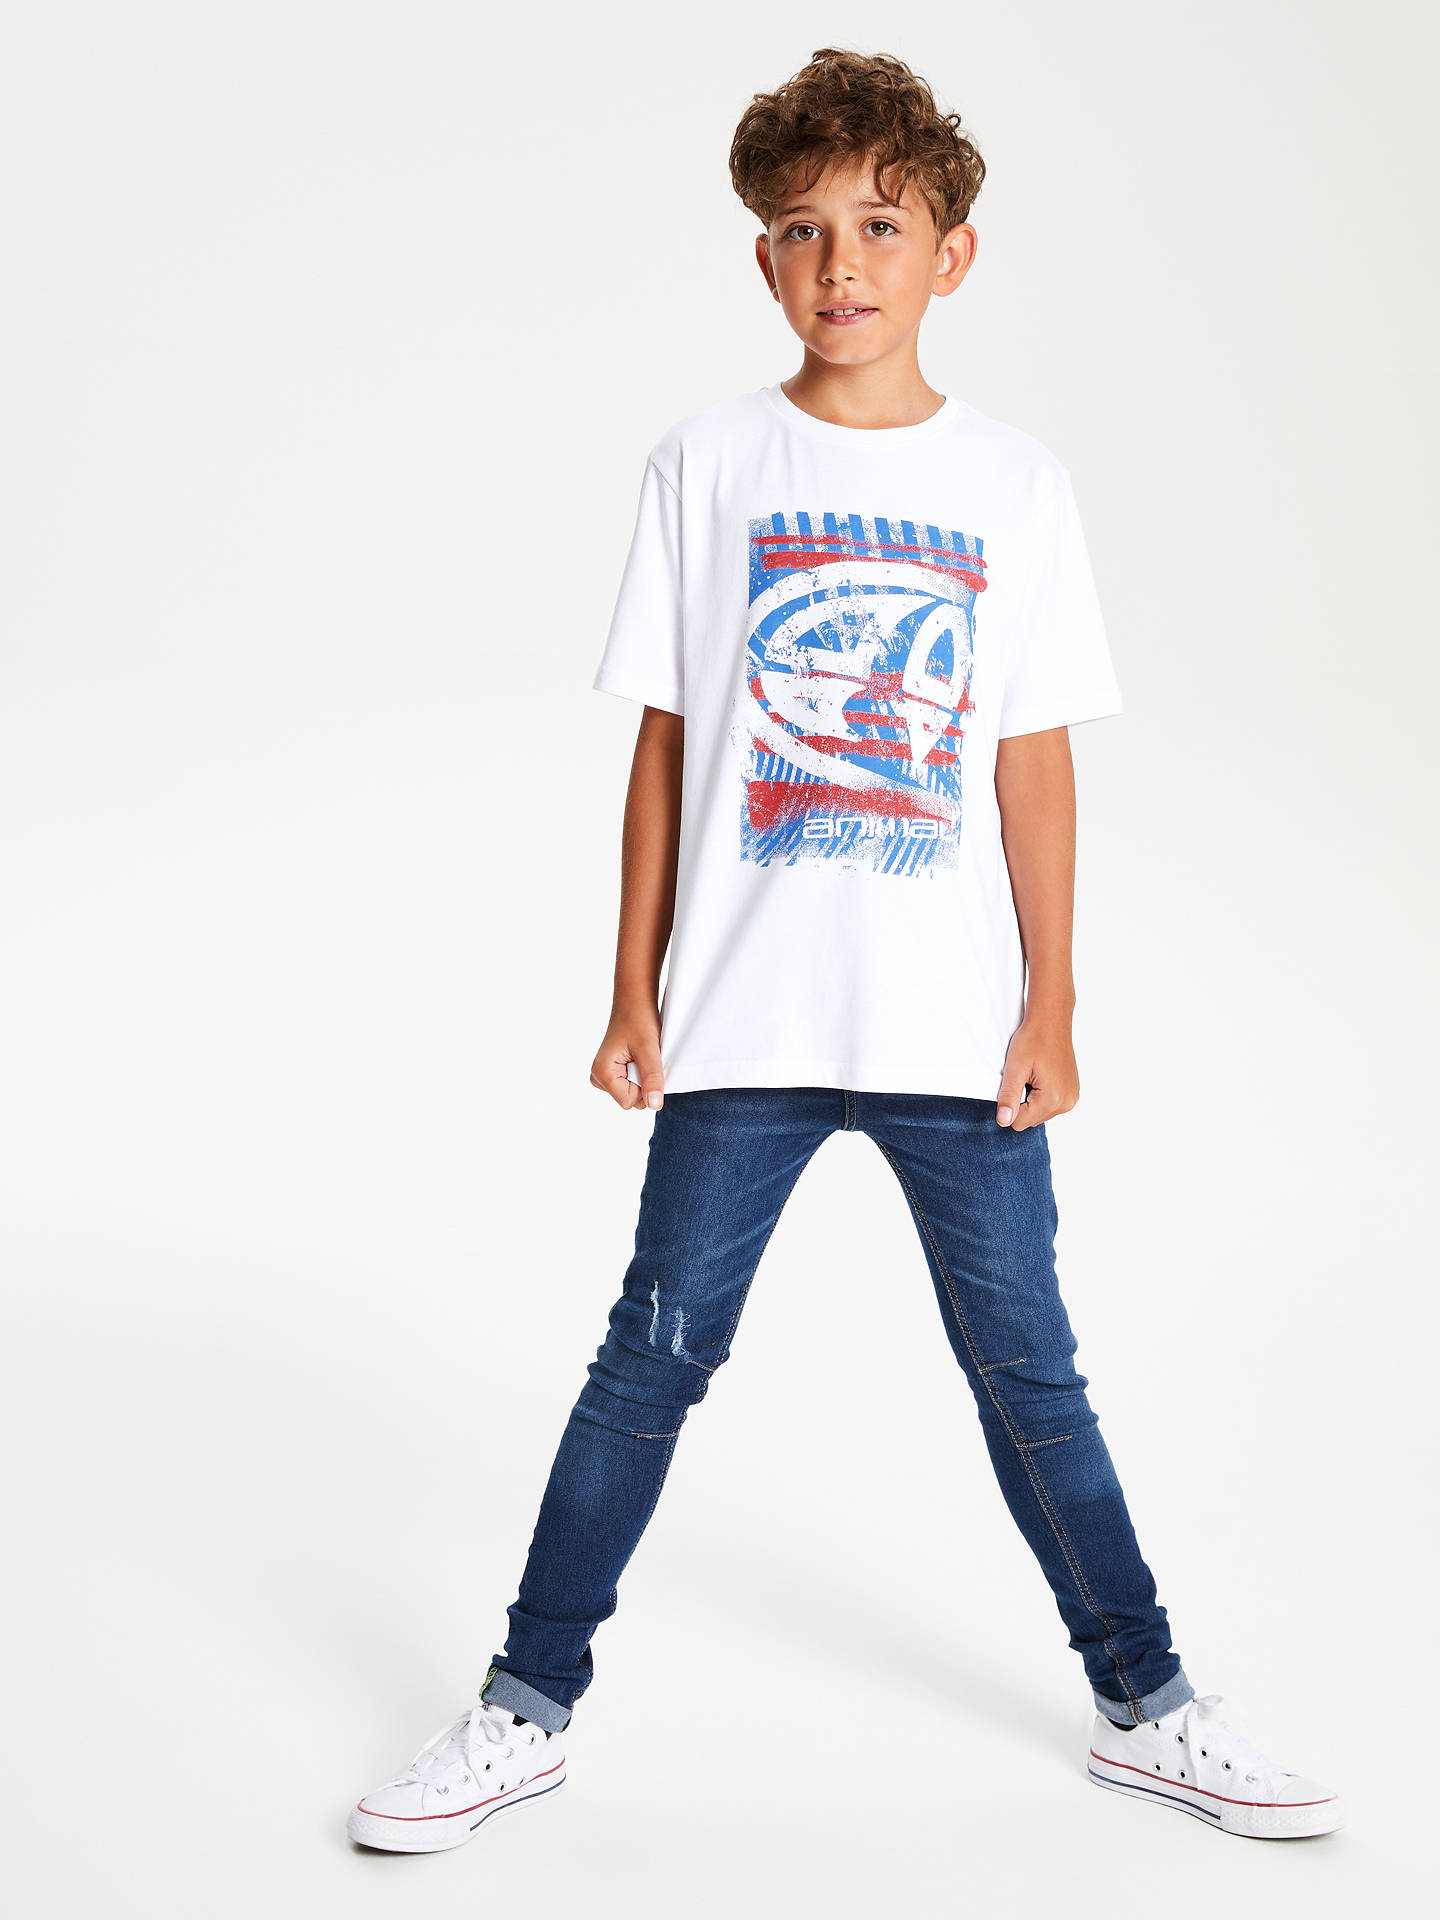 BuyAnimal Boys' Short Sleeve Tabo Graphic T-Shirt, White, 7-8 years Online at johnlewis.com